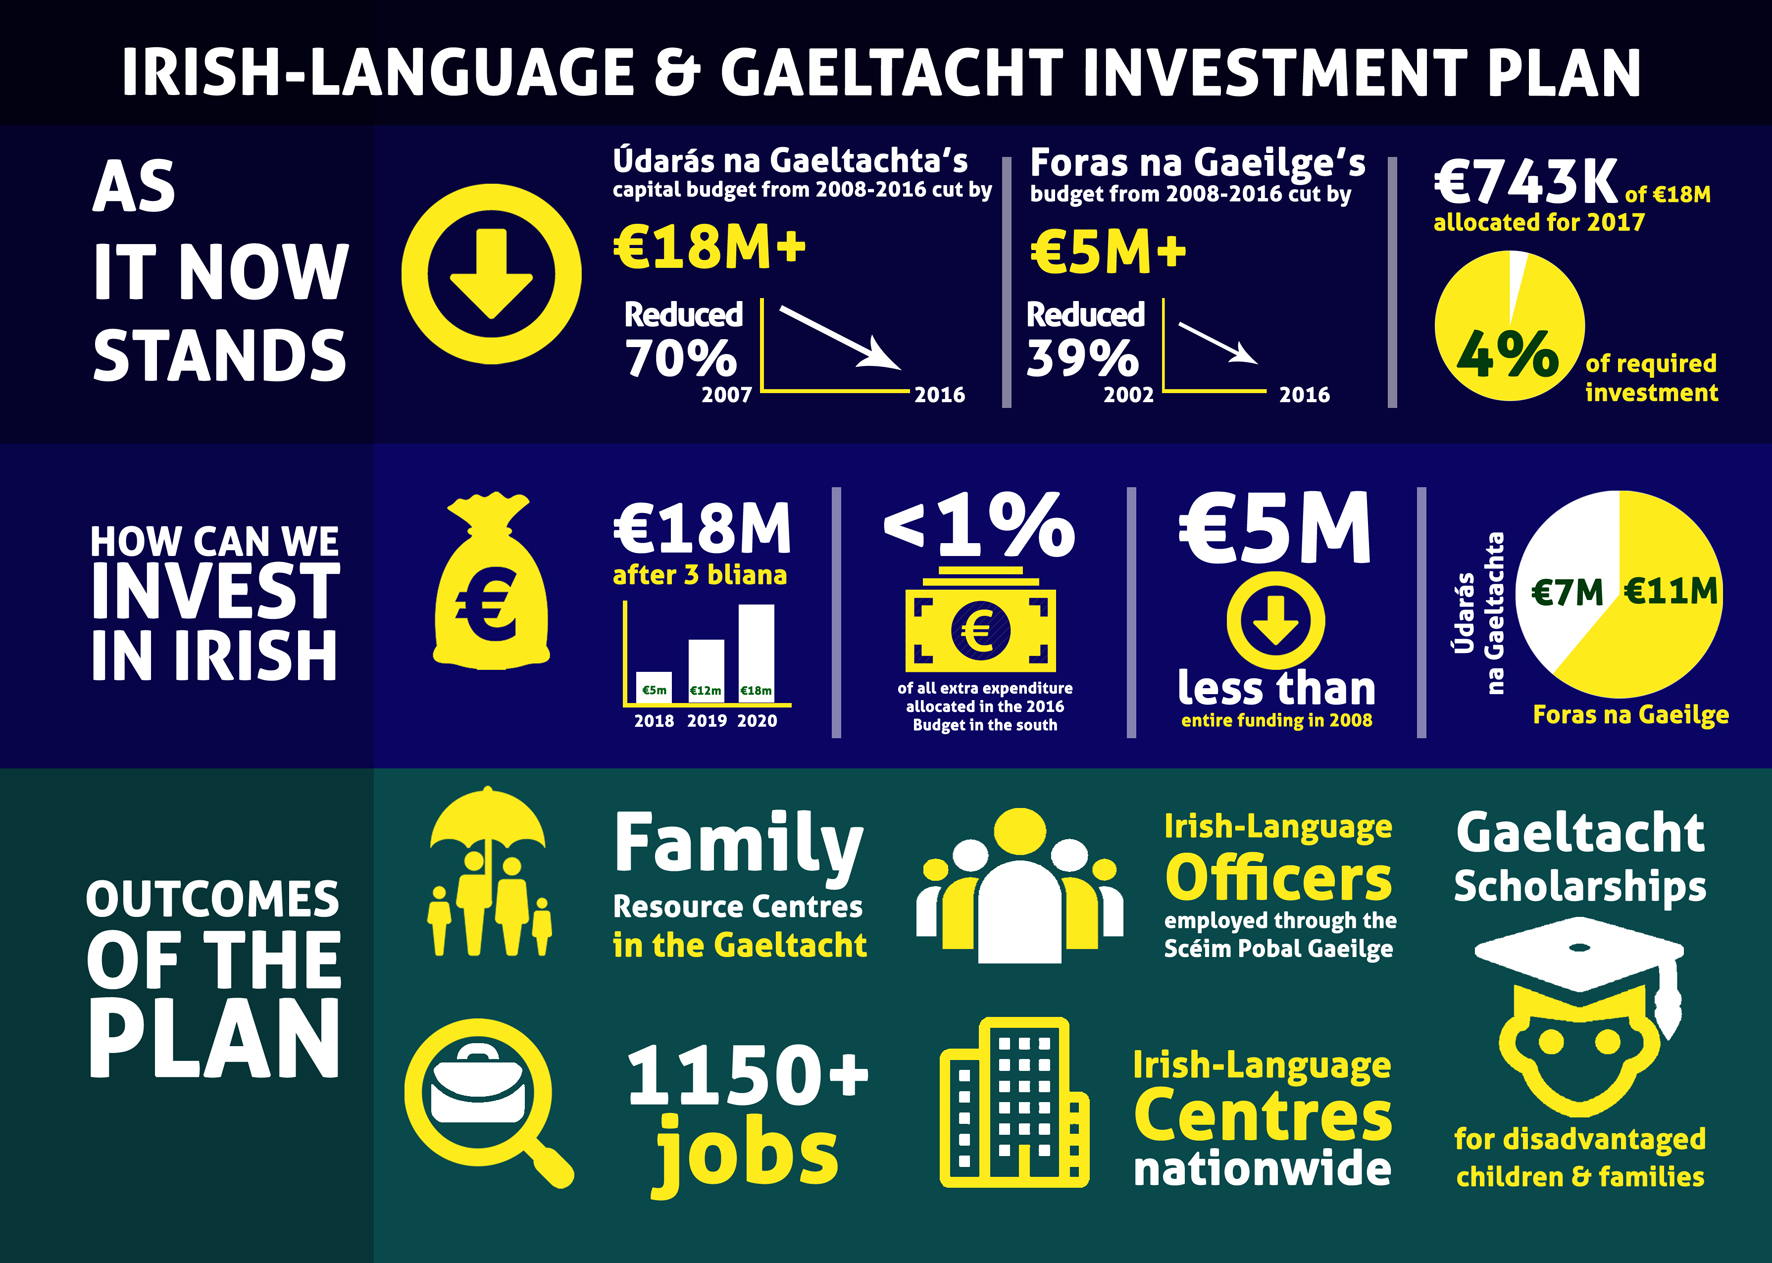 Irish-Language & Gaeltacht Investment Plan